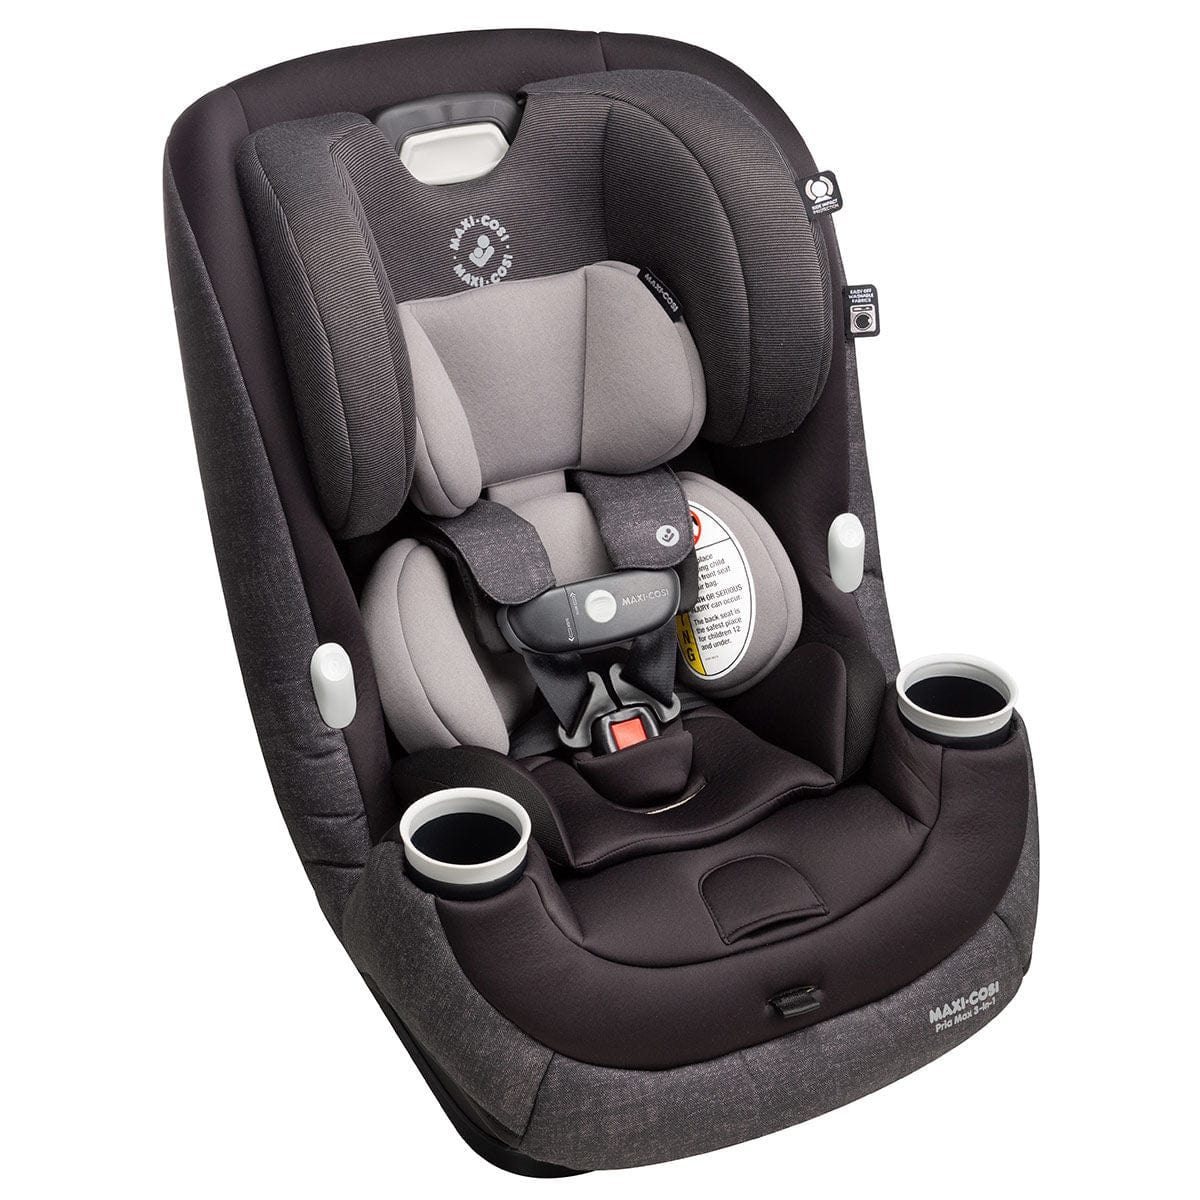 Maxi-Cosi Pria Max 3-in-1 Car Seat - Nomad Black